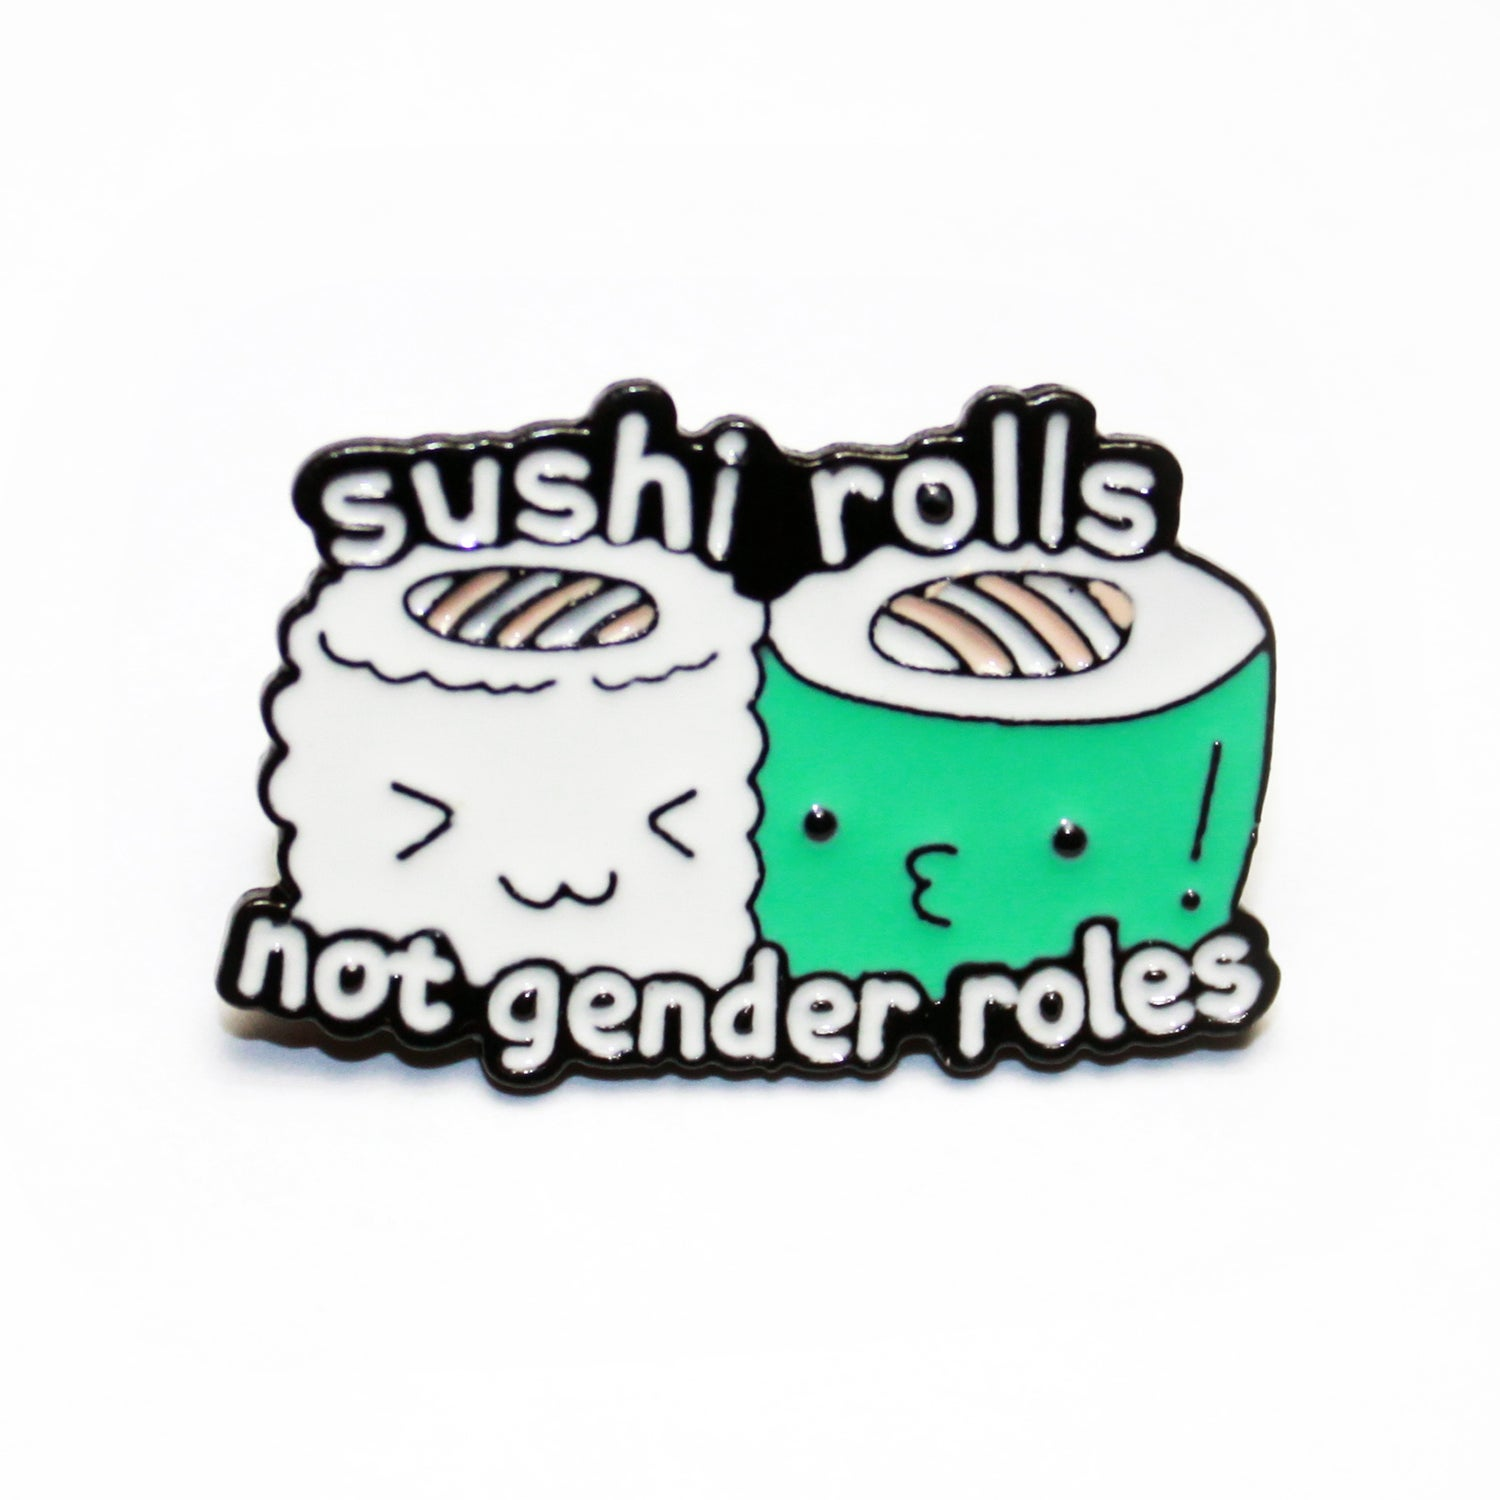 Image of sushi rolls not gender roles pin